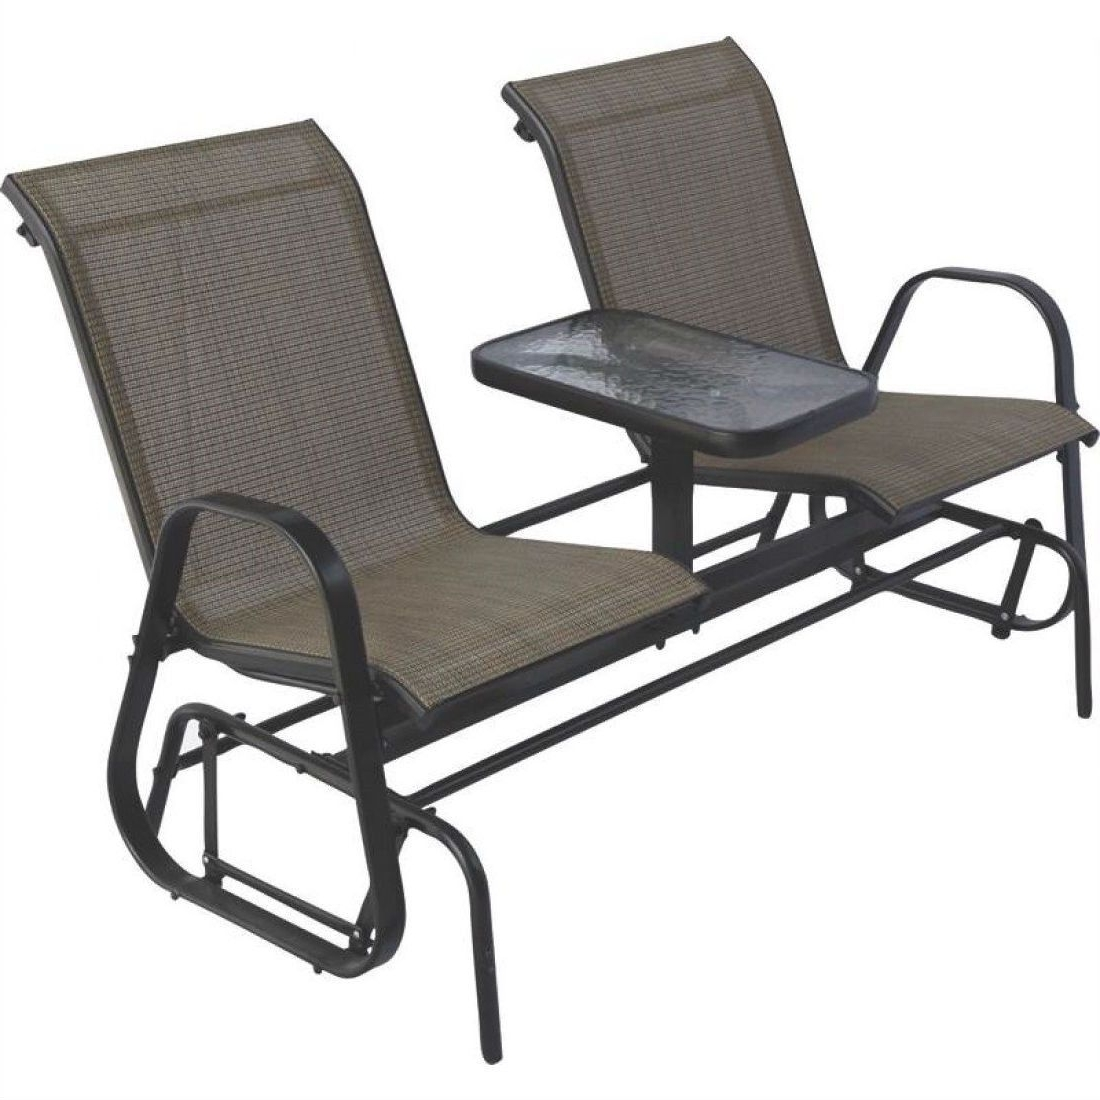 Rocking Chairs For Patio Within 2018 2 Person Outdoor Patio Furniture Glider Chairs With Console Table (View 18 of 20)